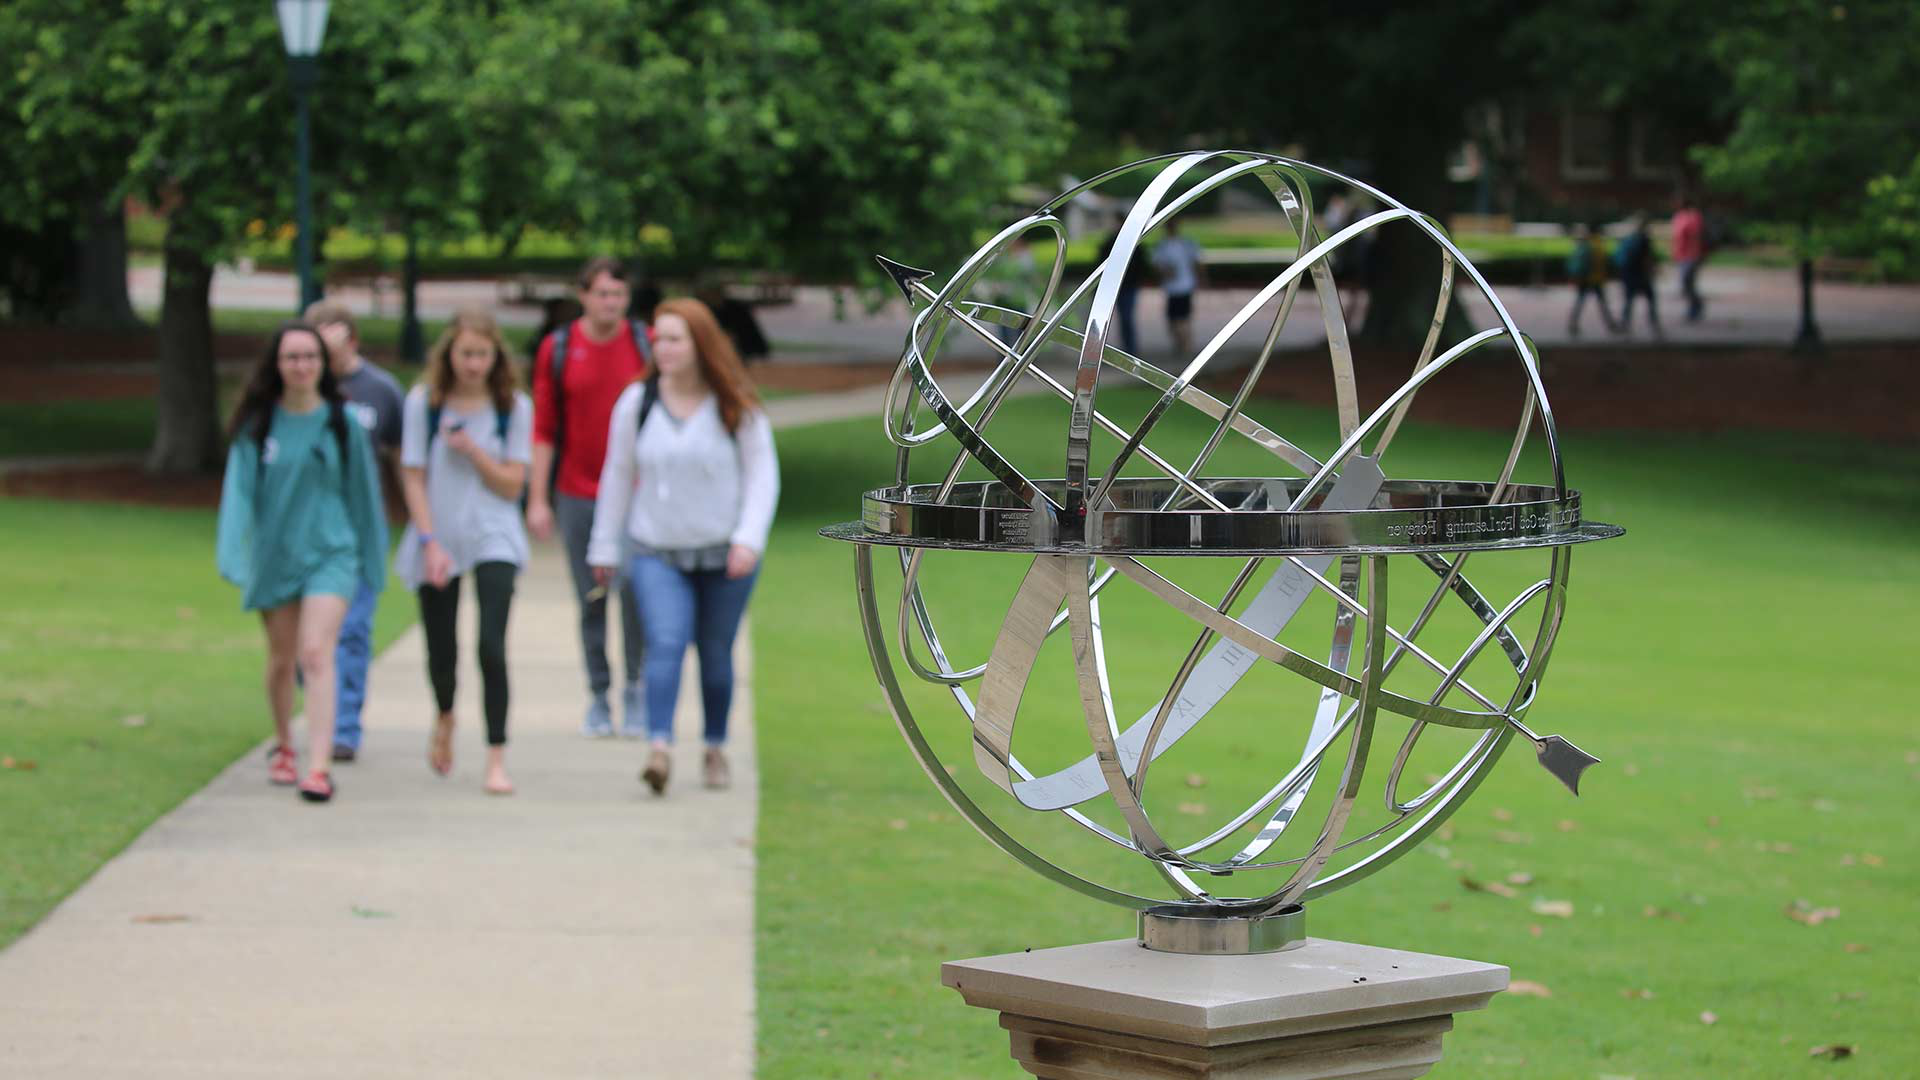 armillary sphere and students